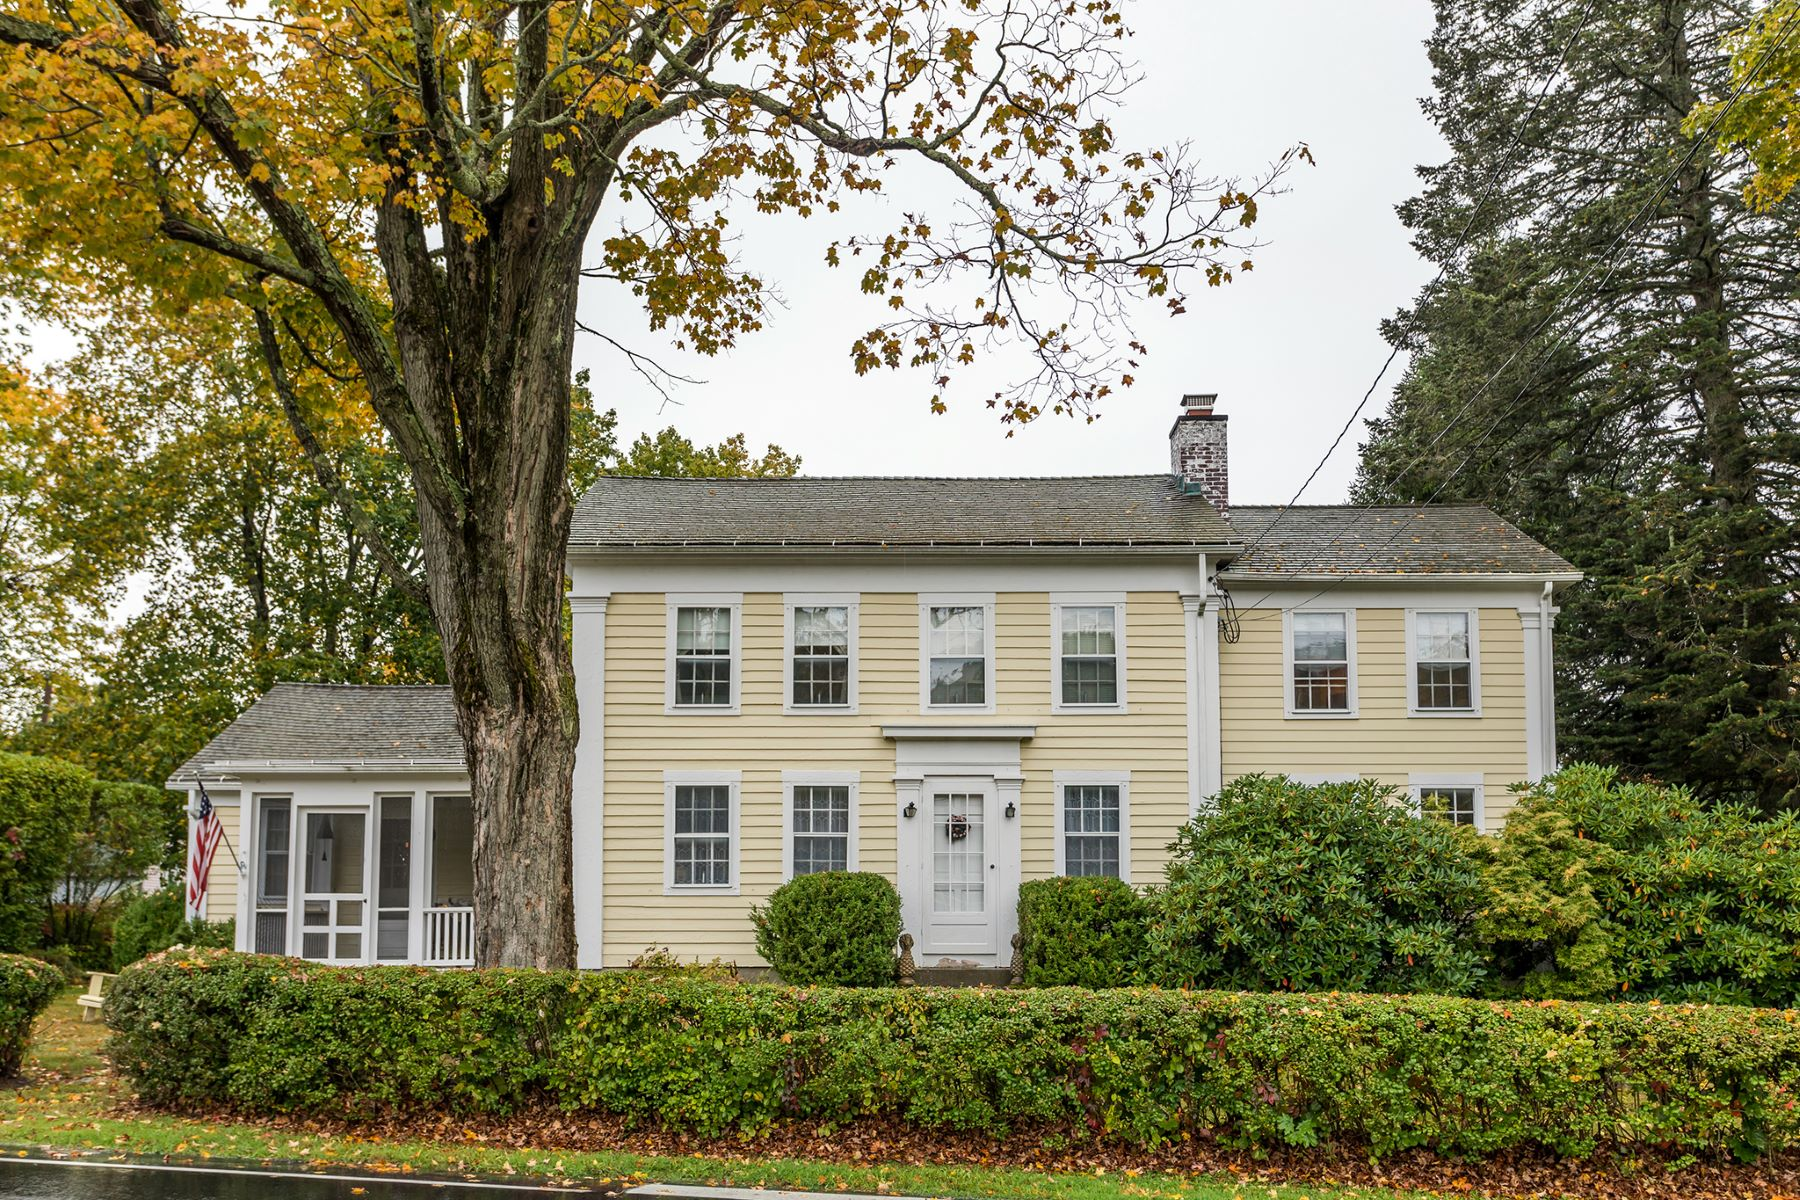 Single Family Homes for Sale at Antique Farmhouse 1 Warner Road Bridgewater, Connecticut 06752 United States